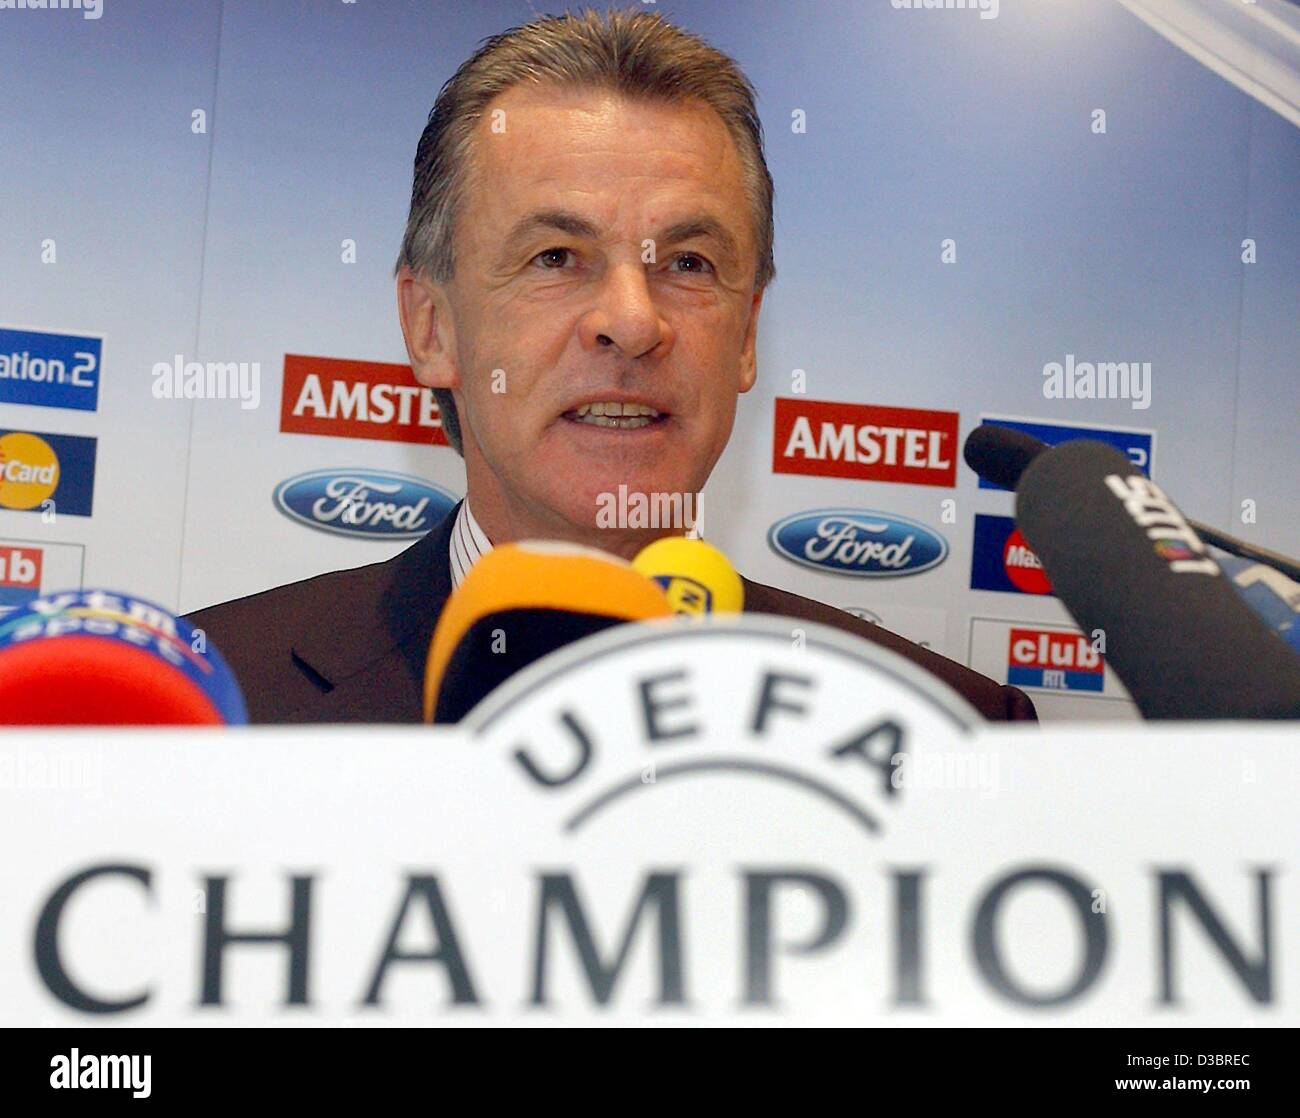 (dpa) - Bayern Munich's soccer coach Ottmar Hitzfeld smiles  as he speaks during a press conference at a hotel - Stock Image